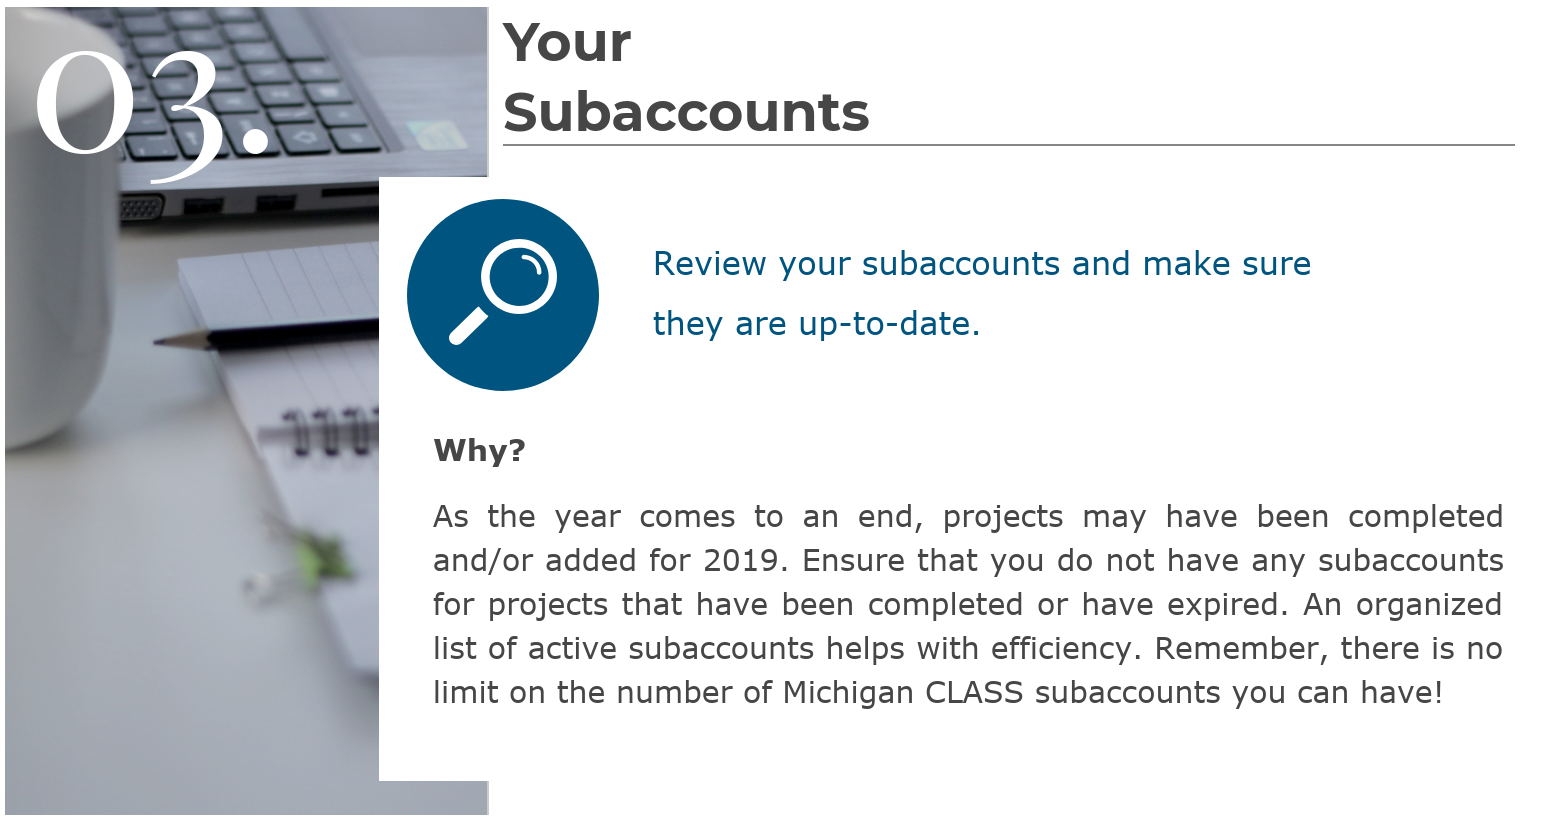 12.18 - Michigan CLASS Updating Your Subaccounts